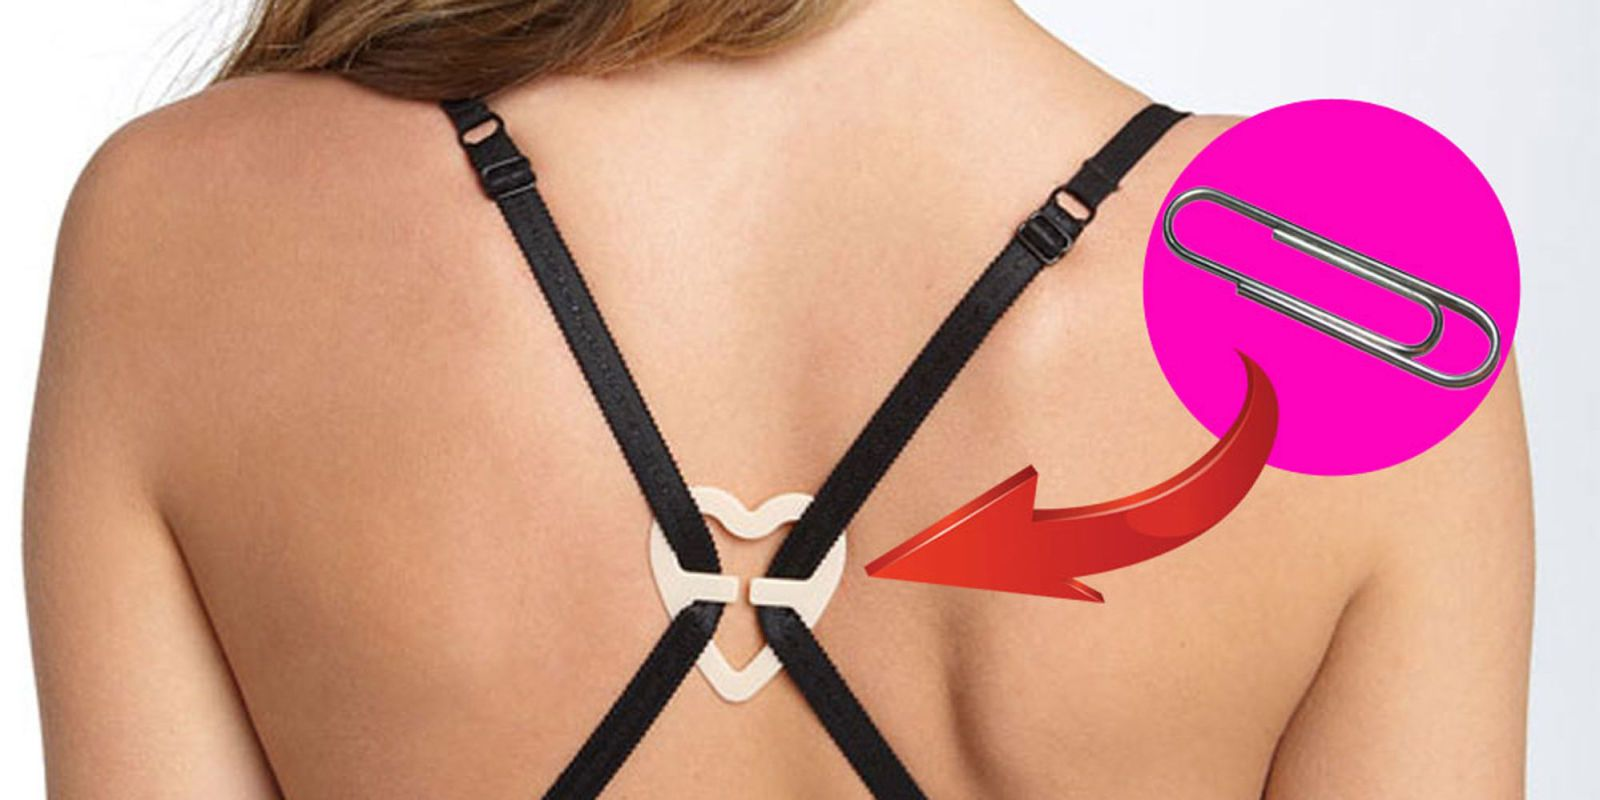 10 Life-Changing Bra Hacks Every Girl Should Know